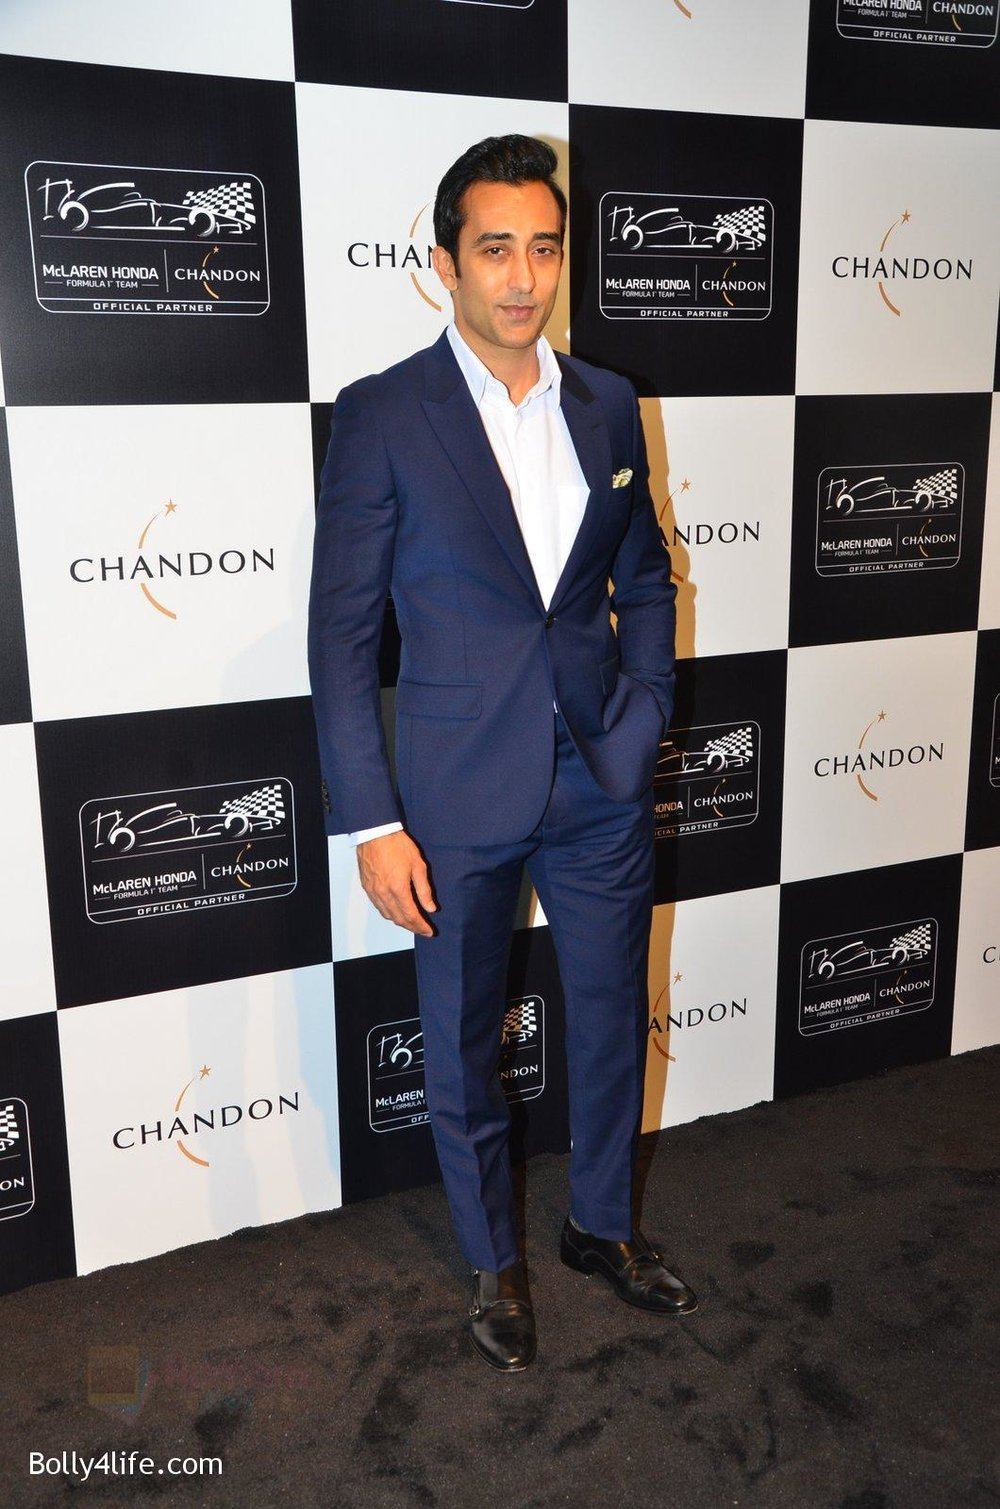 Rahul-Khanna-at-the-unveiling-Chandon-X-McLaren-Honda-installation-in-Mumbai-on-9th-Sept-2016-10.jpg